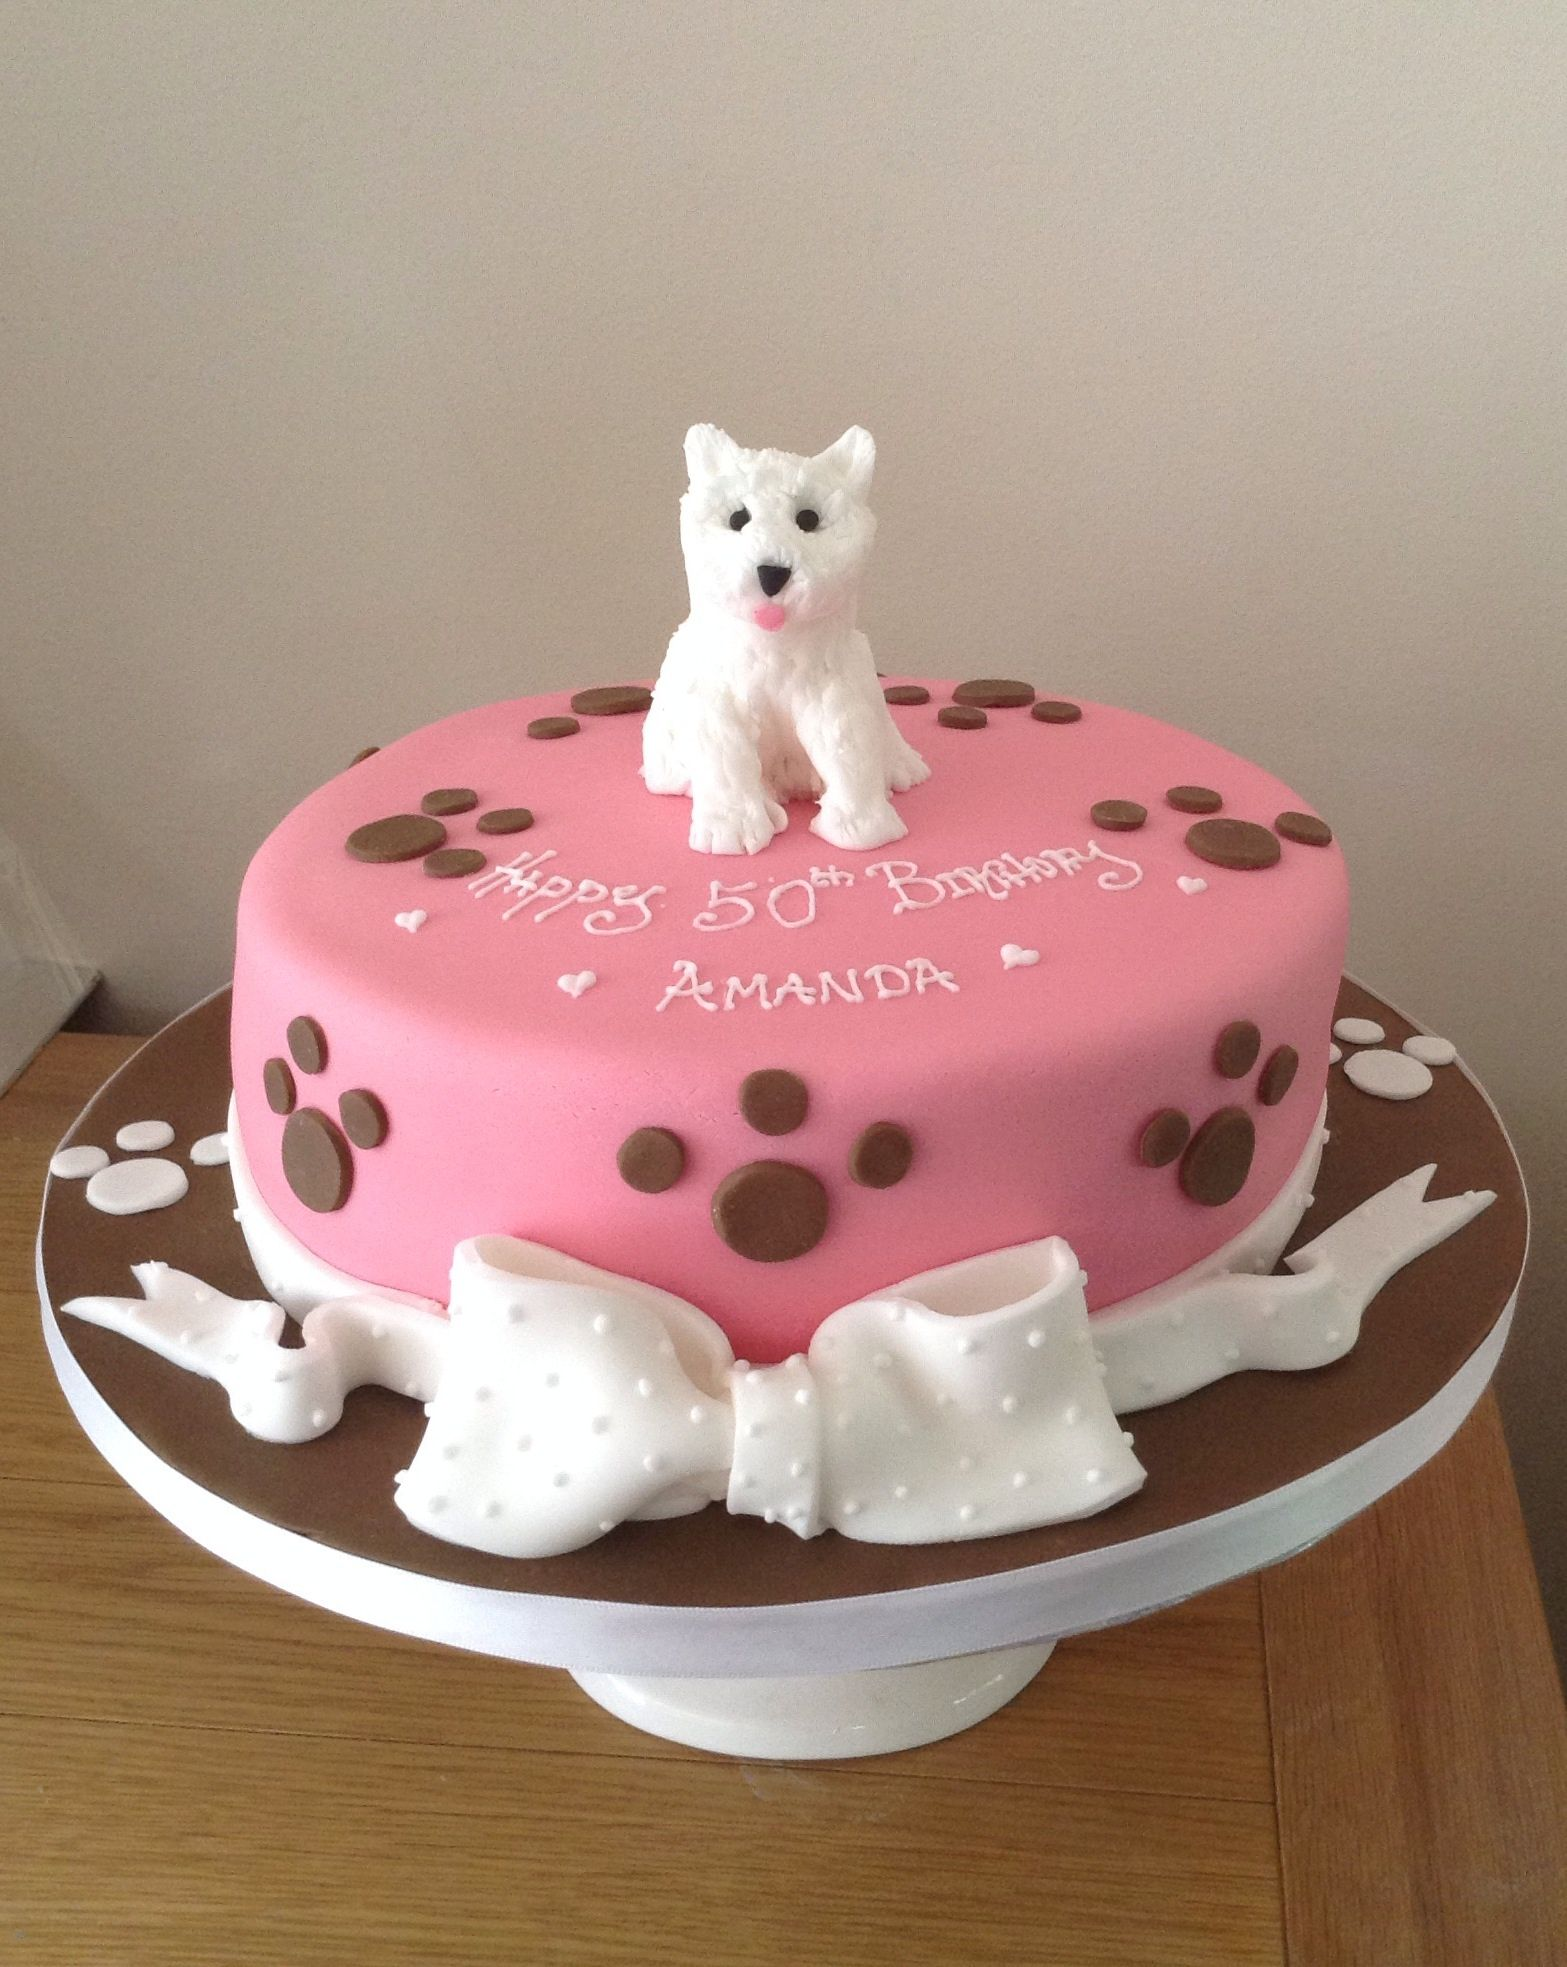 Westie Dog Lovers Cake Cake Decorating In 2019 Pinterest Cake